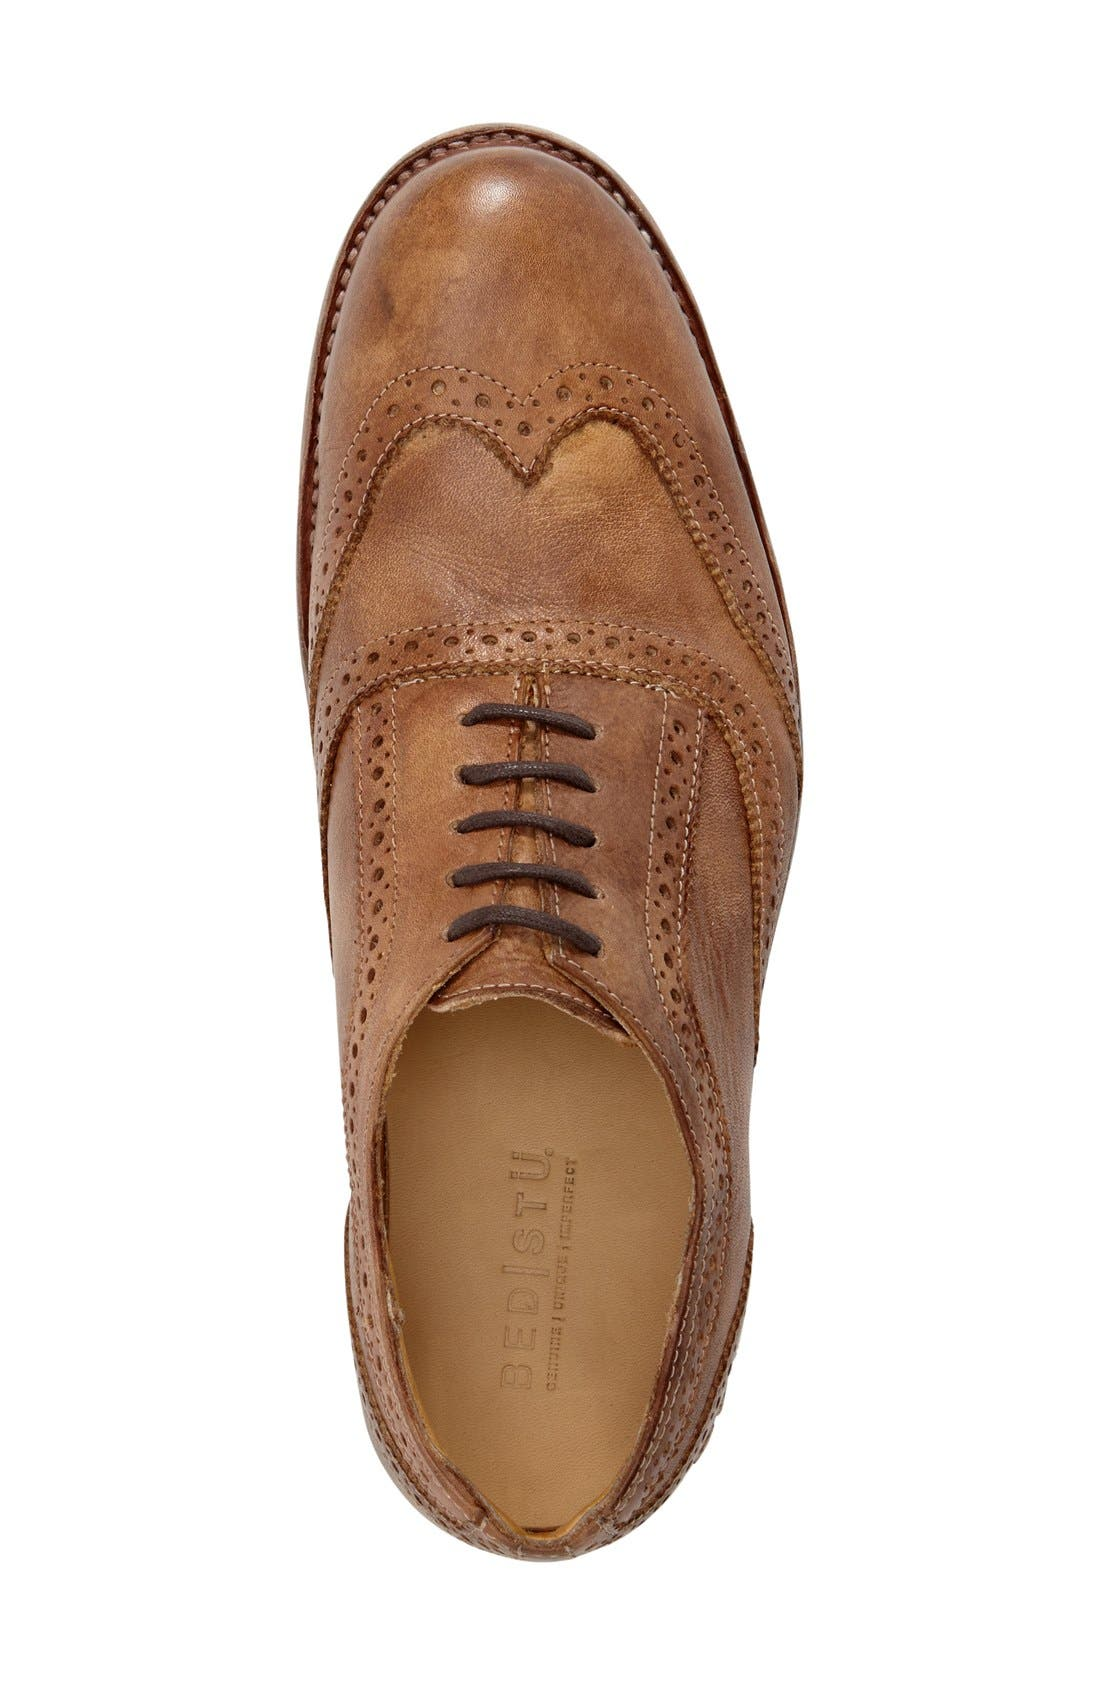 Alternate Image 3  - Bed Stu 'Corsico' Wingtip Oxford (Men)